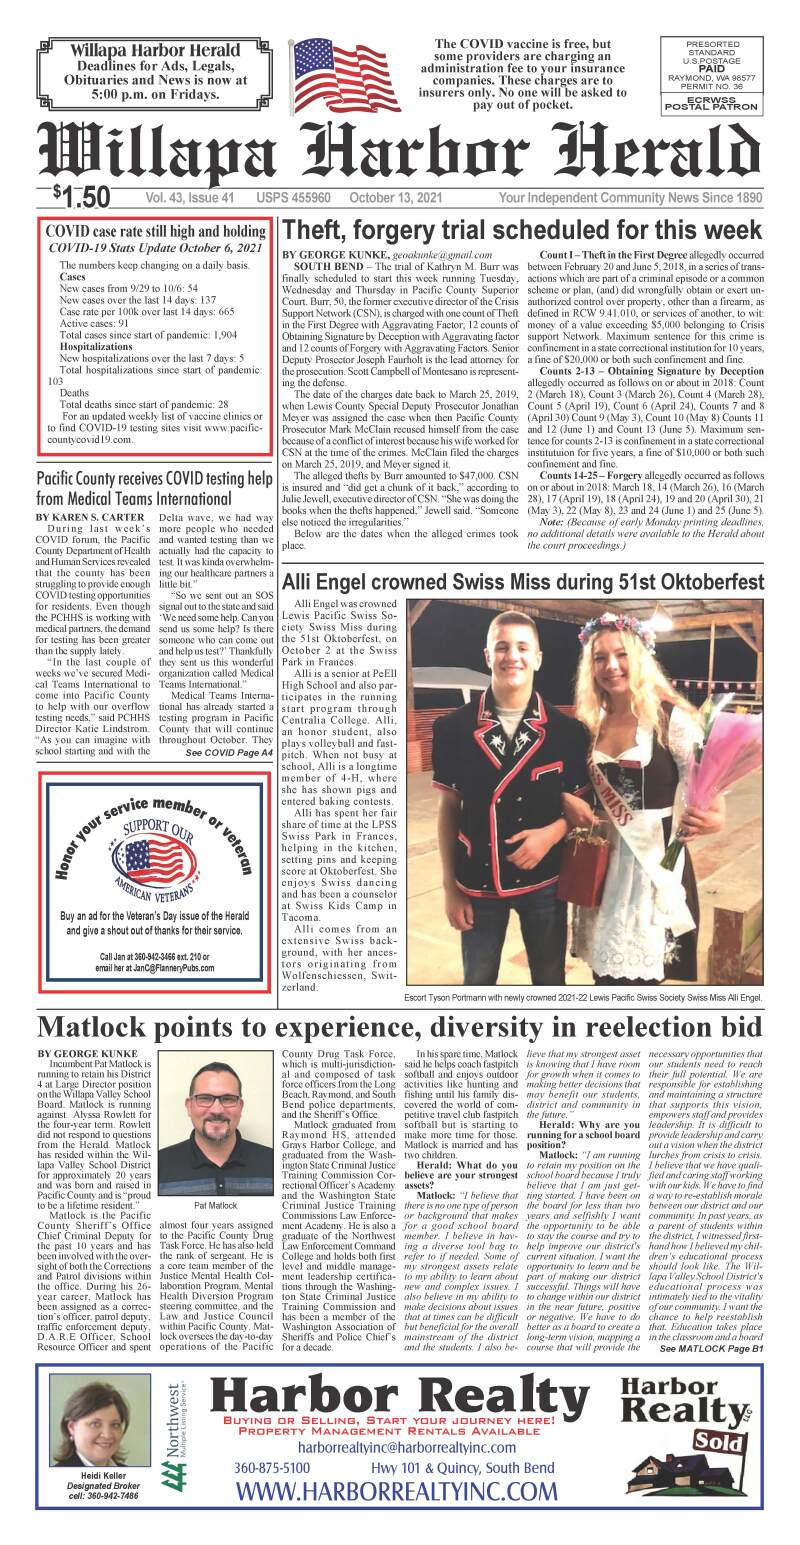 October 13, 2021 Willapa Harbor Herald and Pacific County Press